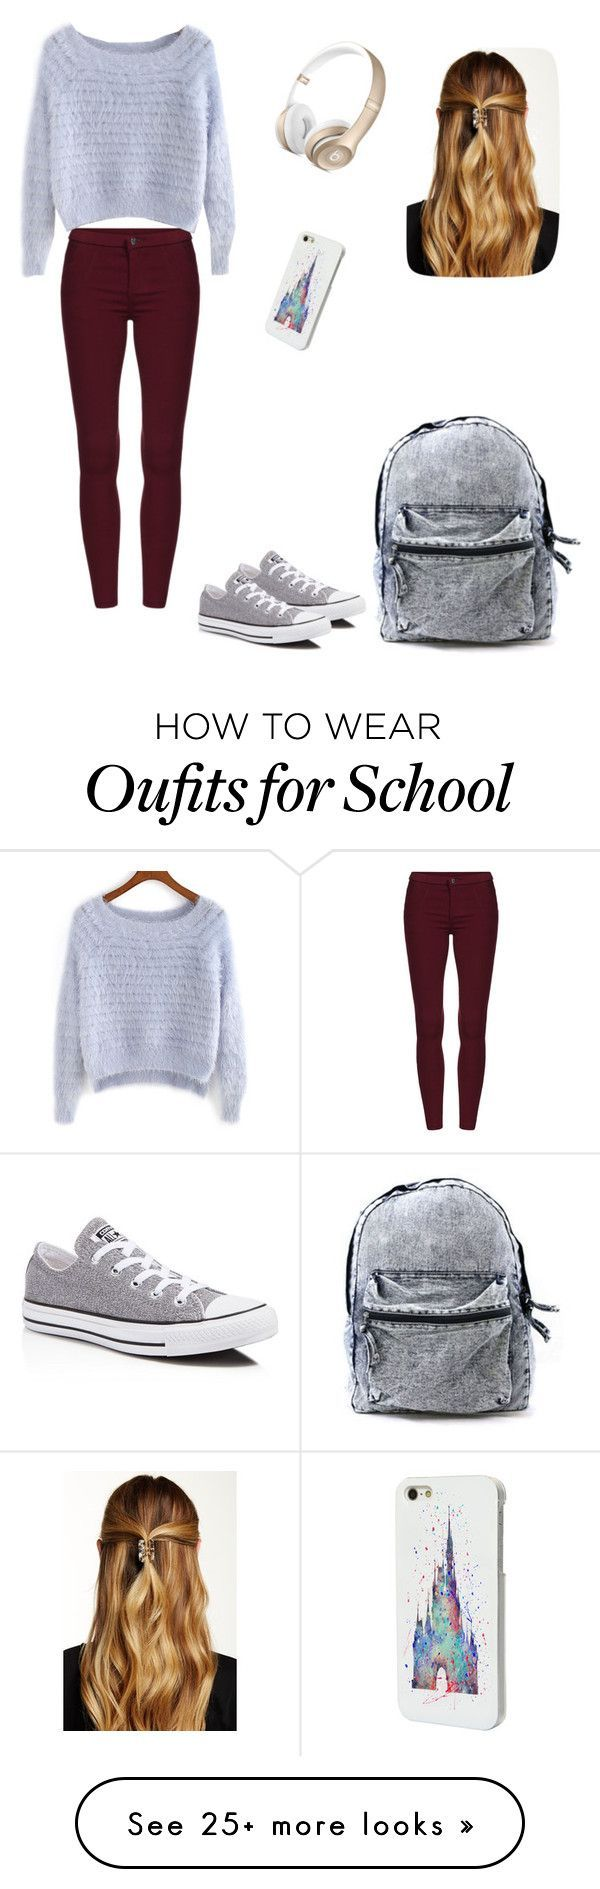 """School look"" by fashiongirlprox on Polyvore featuring Converse, Disney and Nata..."